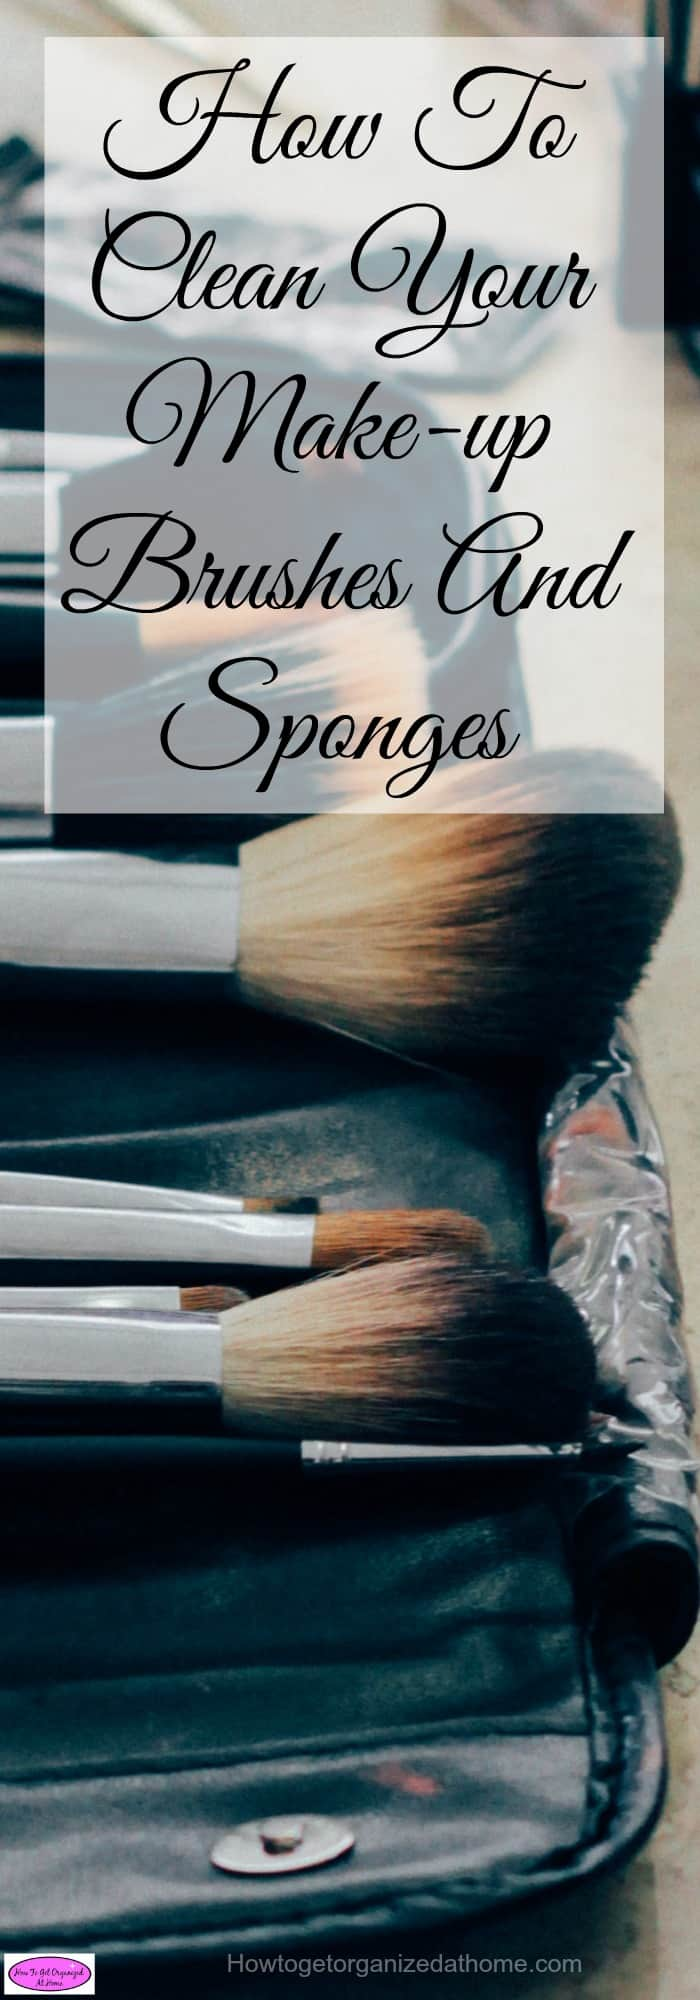 It is important that you clean your make-up brushes and sponges regularly to ensure that they are not covered in germs and bacteria.